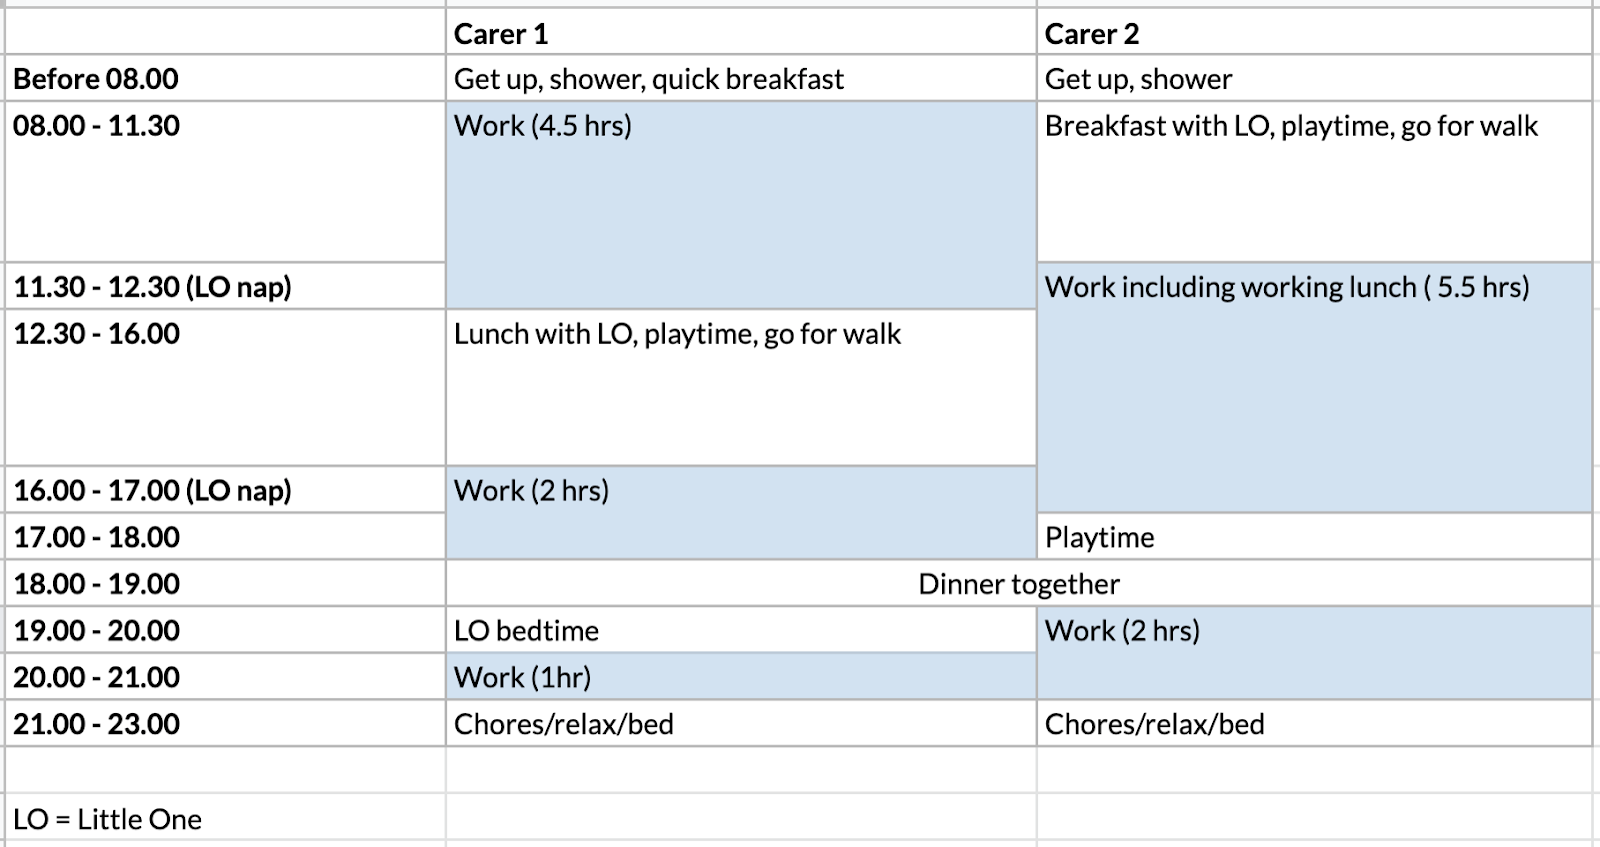 Leanne's schedule showing working hour and parenting responsibilities